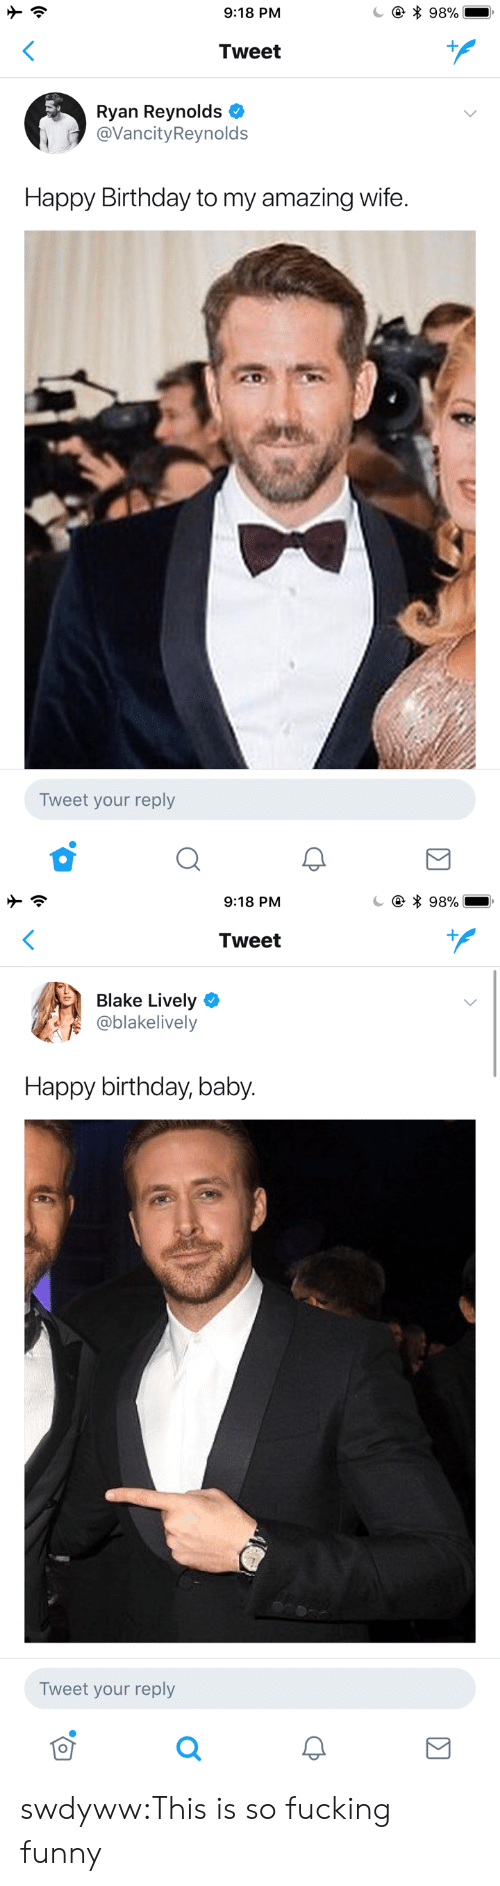 Birthday, Fucking, and Funny: 9:18 PM  * 98%  Tweet  Ryan Reynolds  @VancityReynolds  Happy Birthday to my amazing wife.  Tweet your reply   9:18 PM  * 98%  Tweet  Blake Lively  @blakelively  Happy birthday, baby.  Tweet your reply swdyww:This is so fucking funny